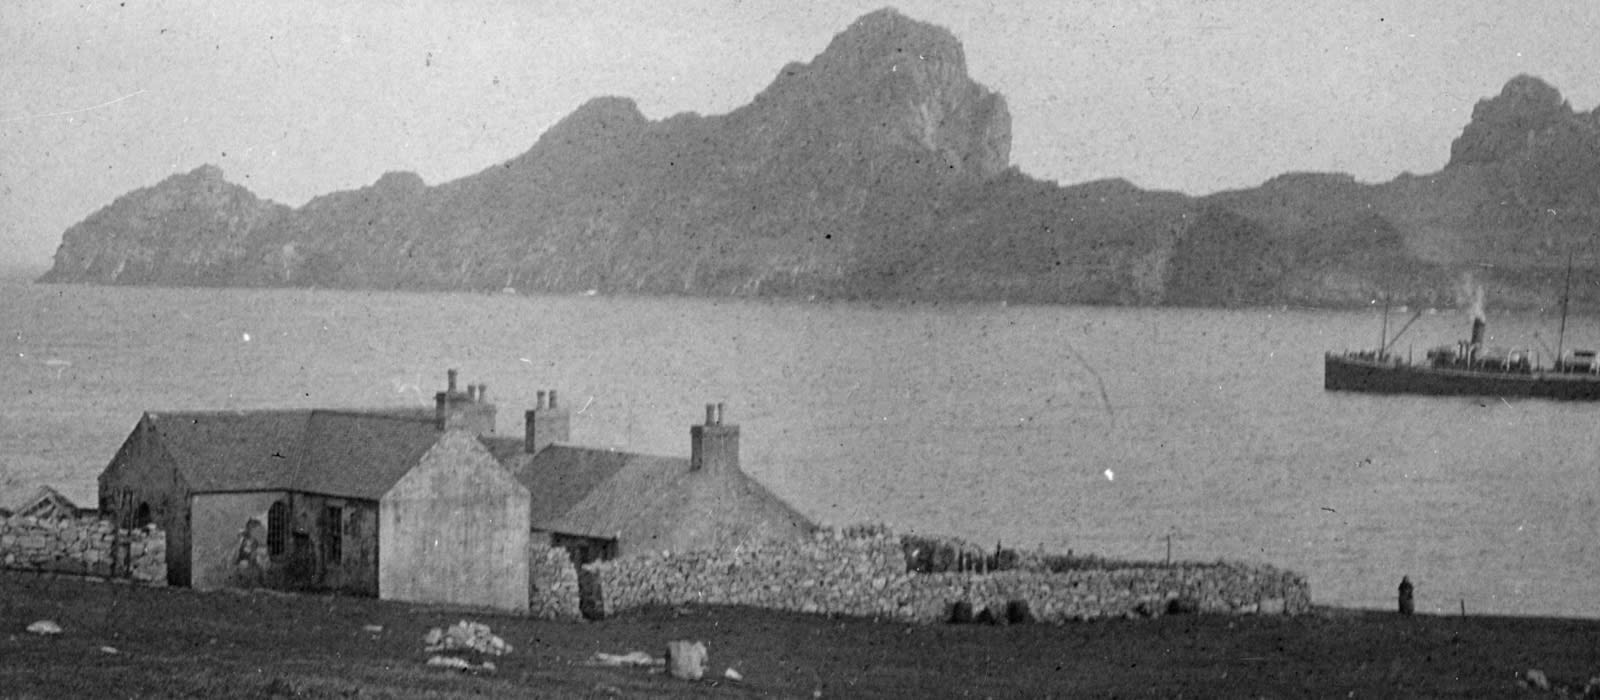 A View of St Kilda